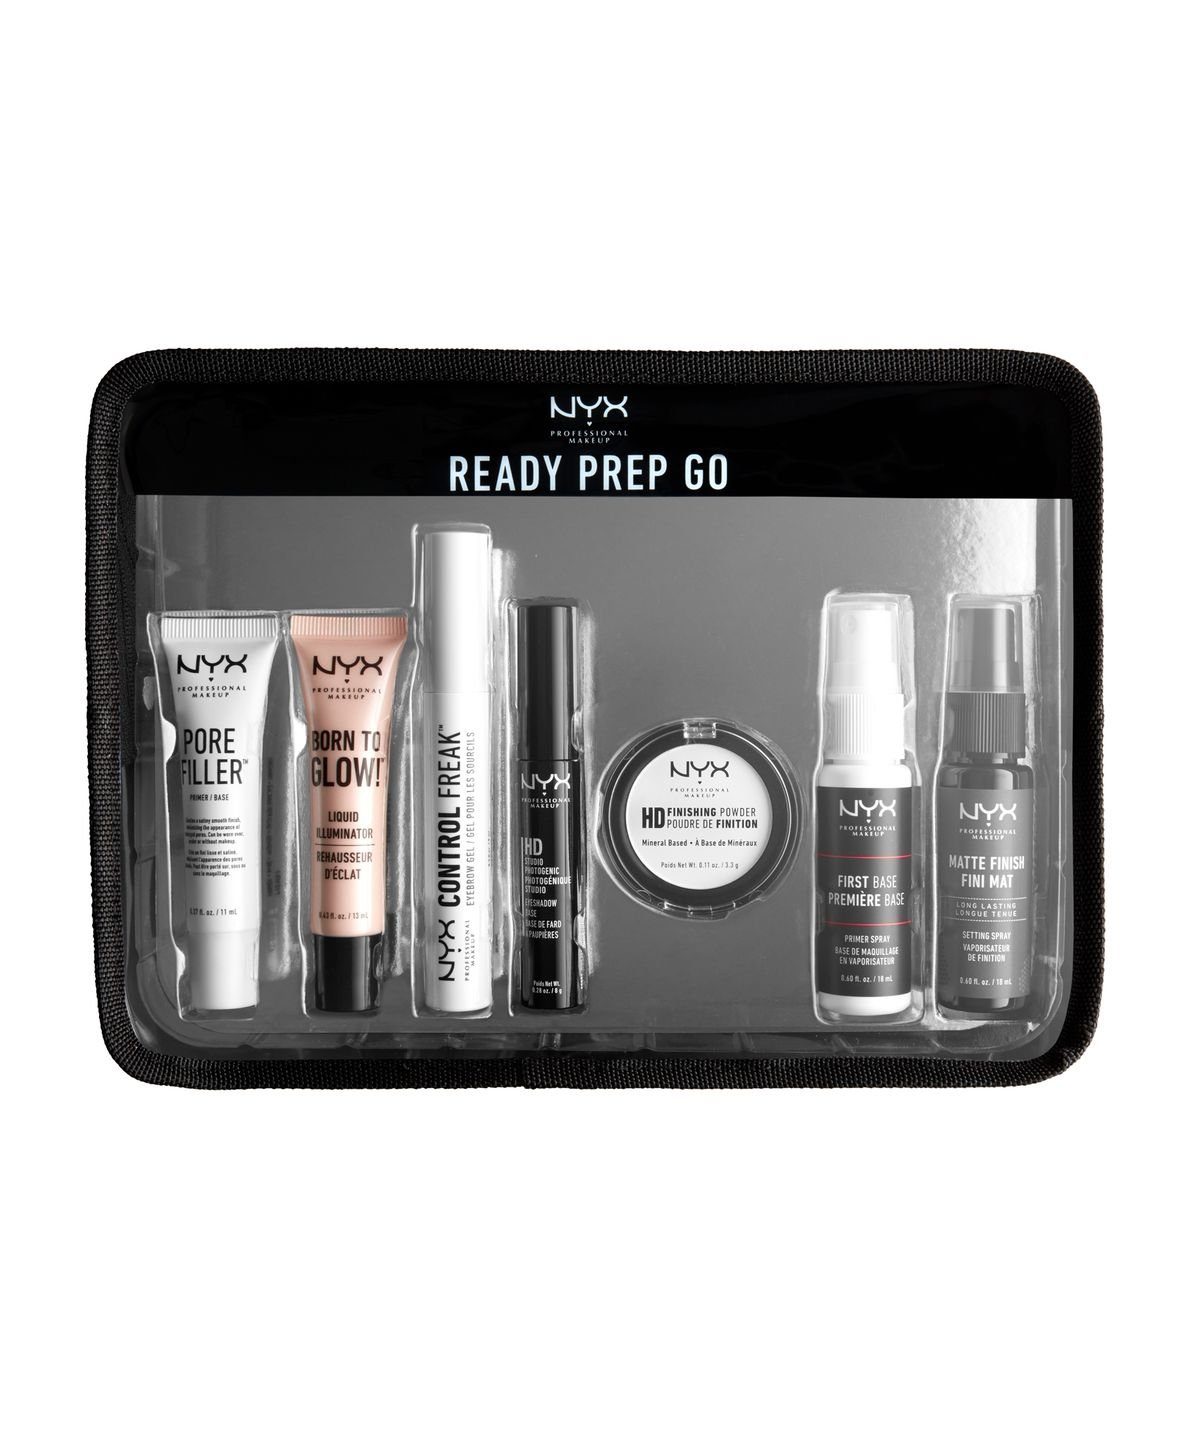 NYX PROFESSIONAL MAKEUP Jet Set Travel Kit - Ready, Prep, Go